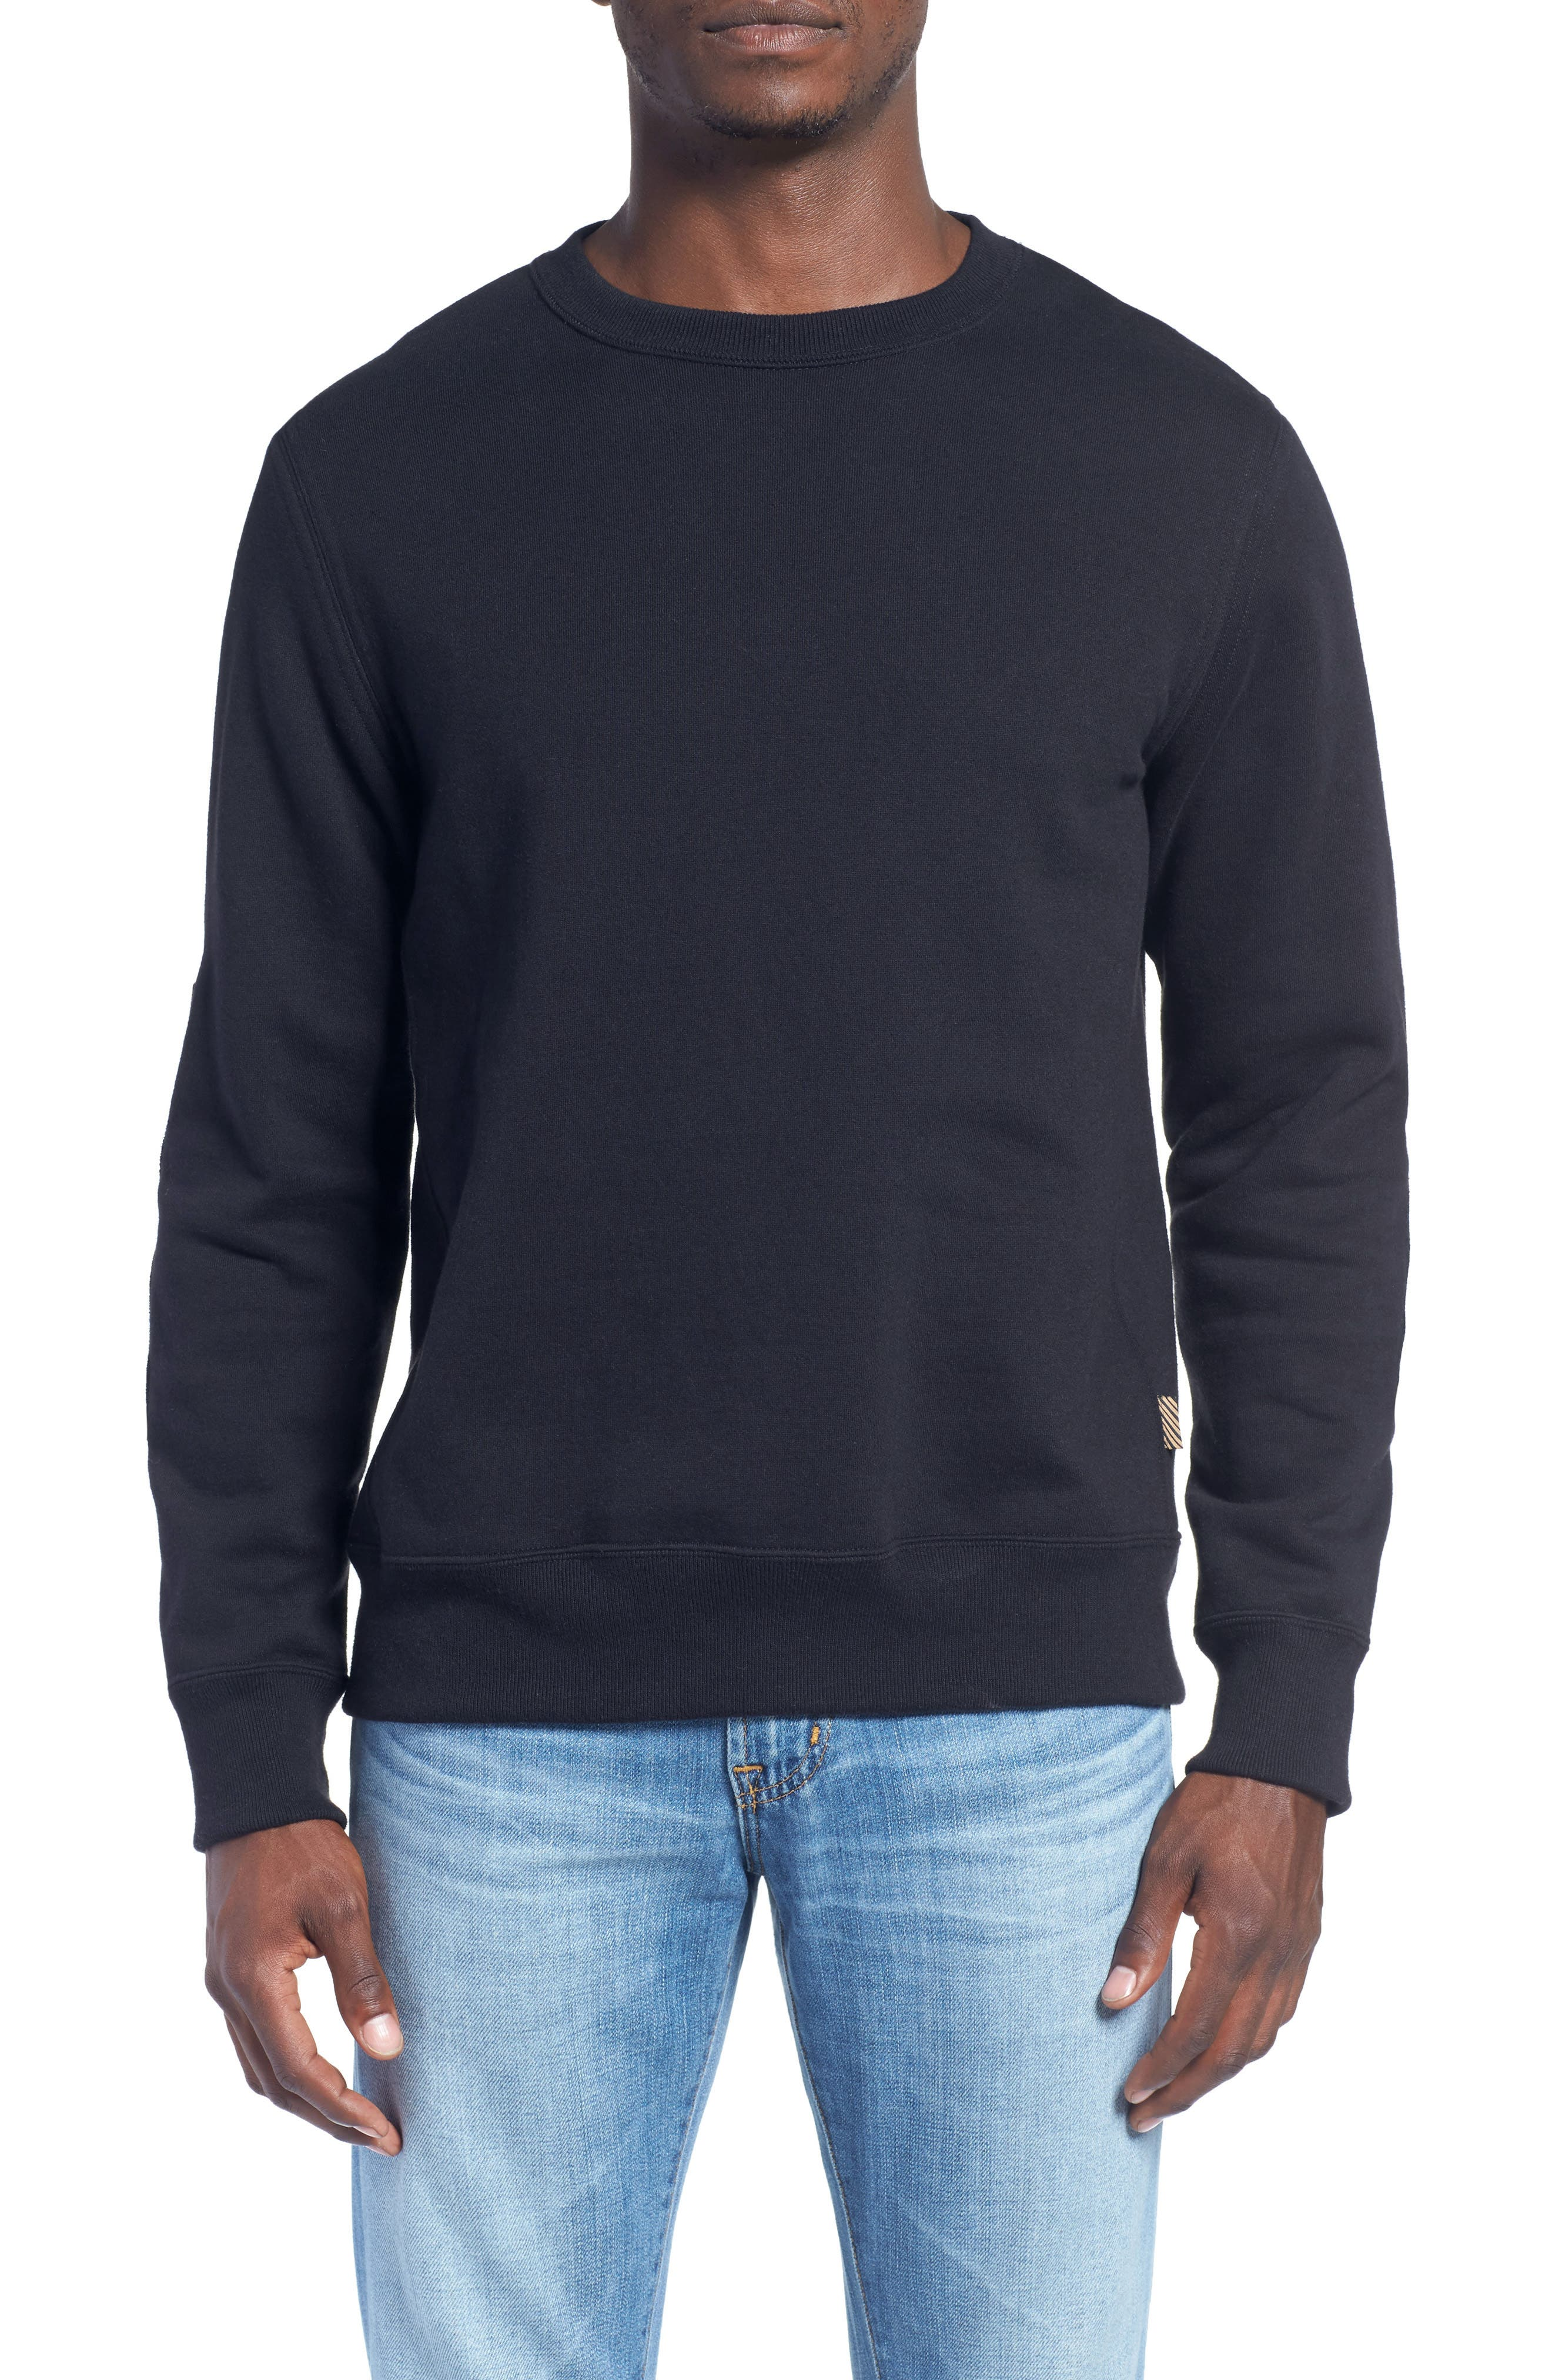 'Dover' Crewneck Sweatshirt With Leather Elbow Patches